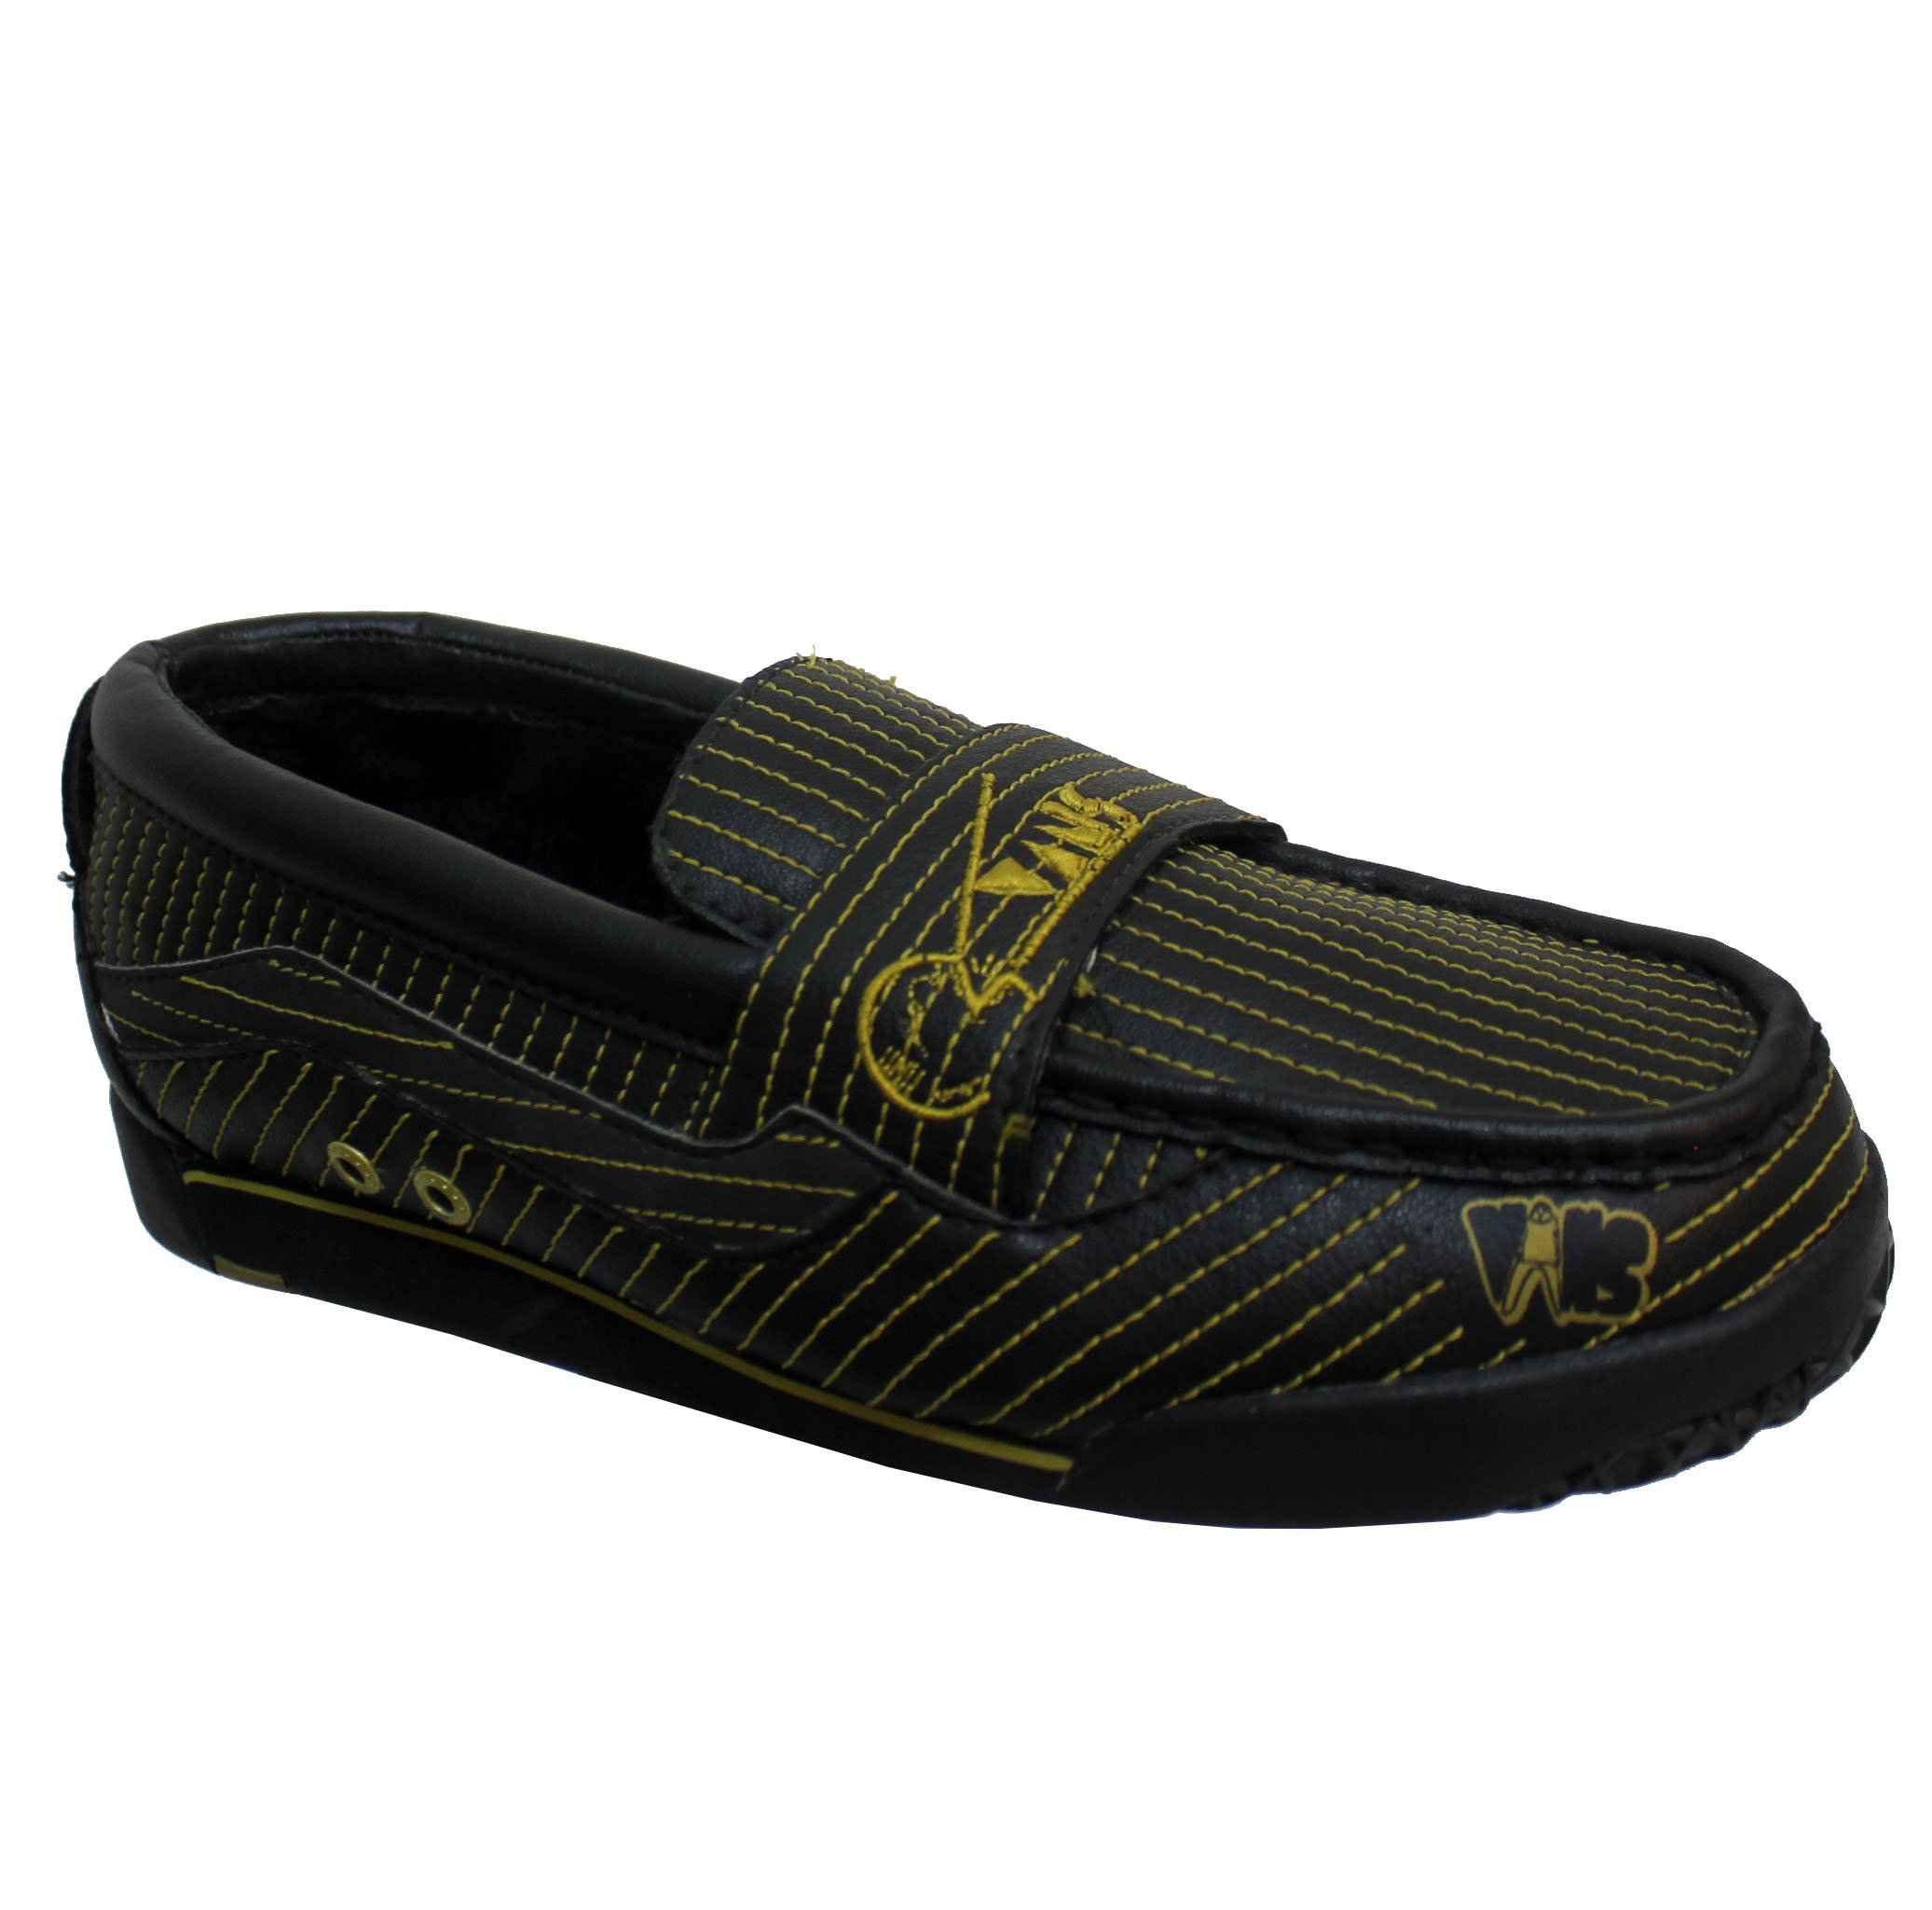 кеды vans 07/08 kass black/gold 8.5 (е)